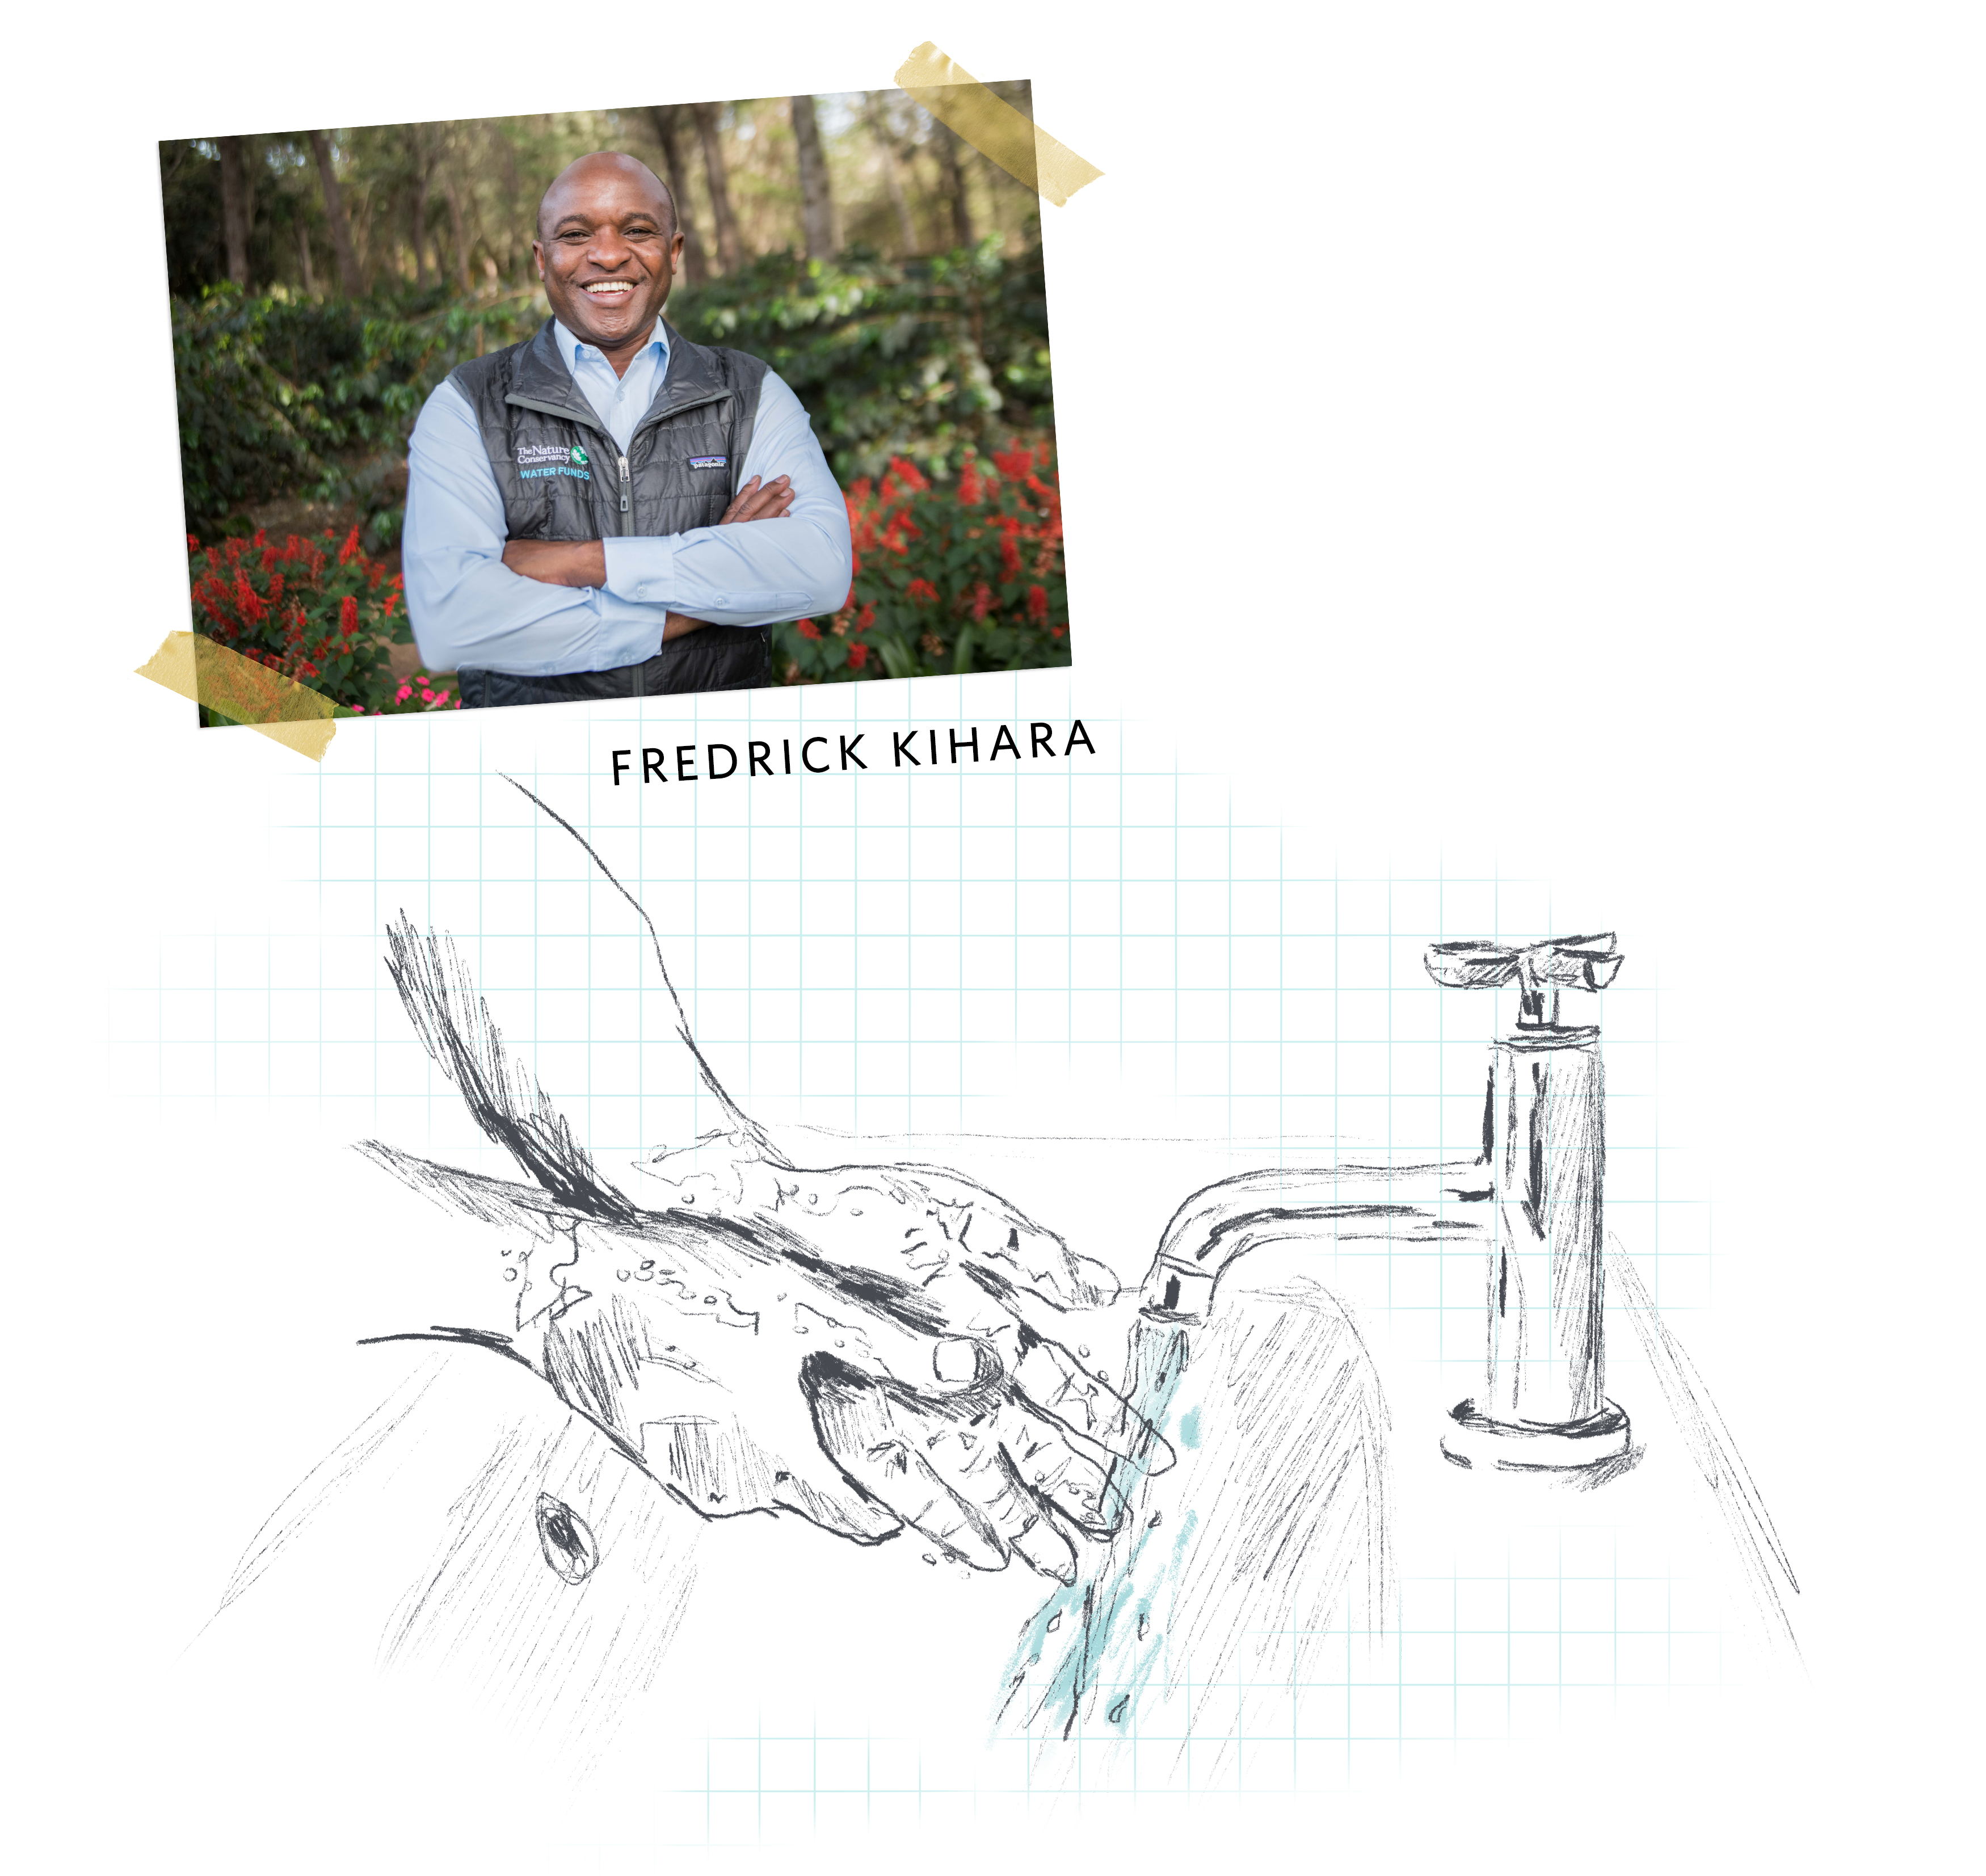 A photo of a smiling man with arms crossed in a garden, collaged with a sketchy illustration of hands being washed in a sink with running water.